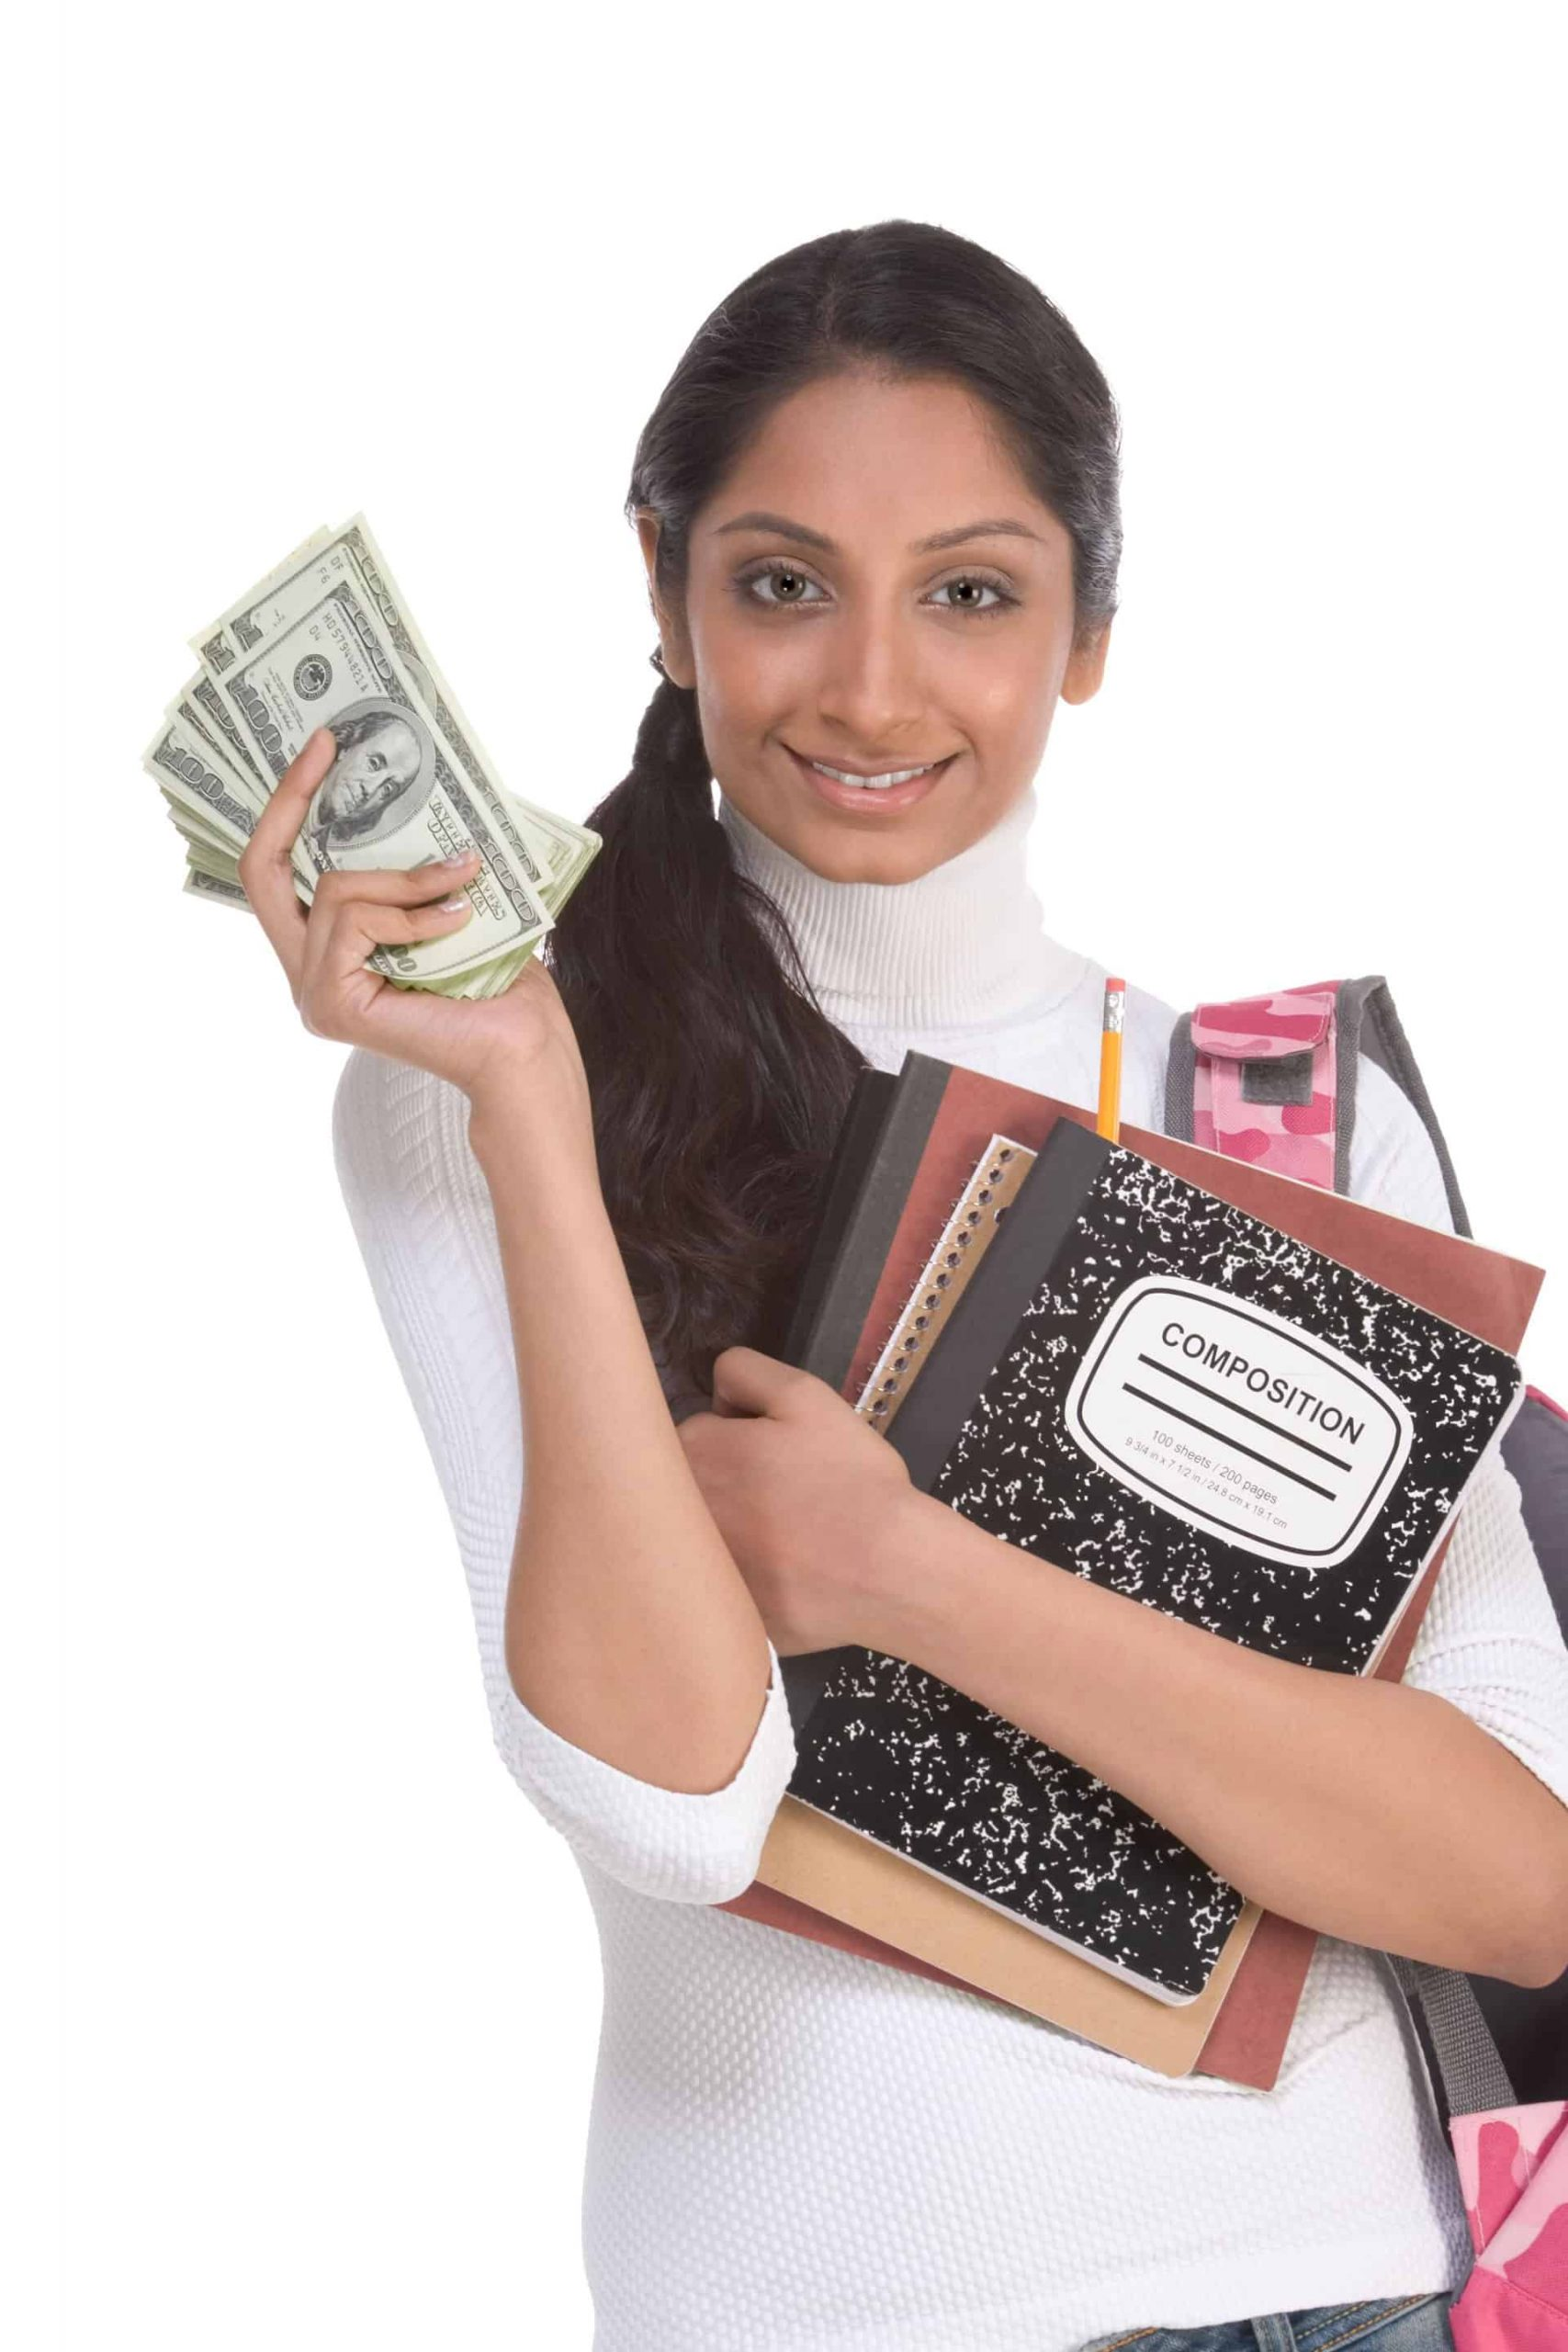 Woman Models Money From Savings On Tax Filing